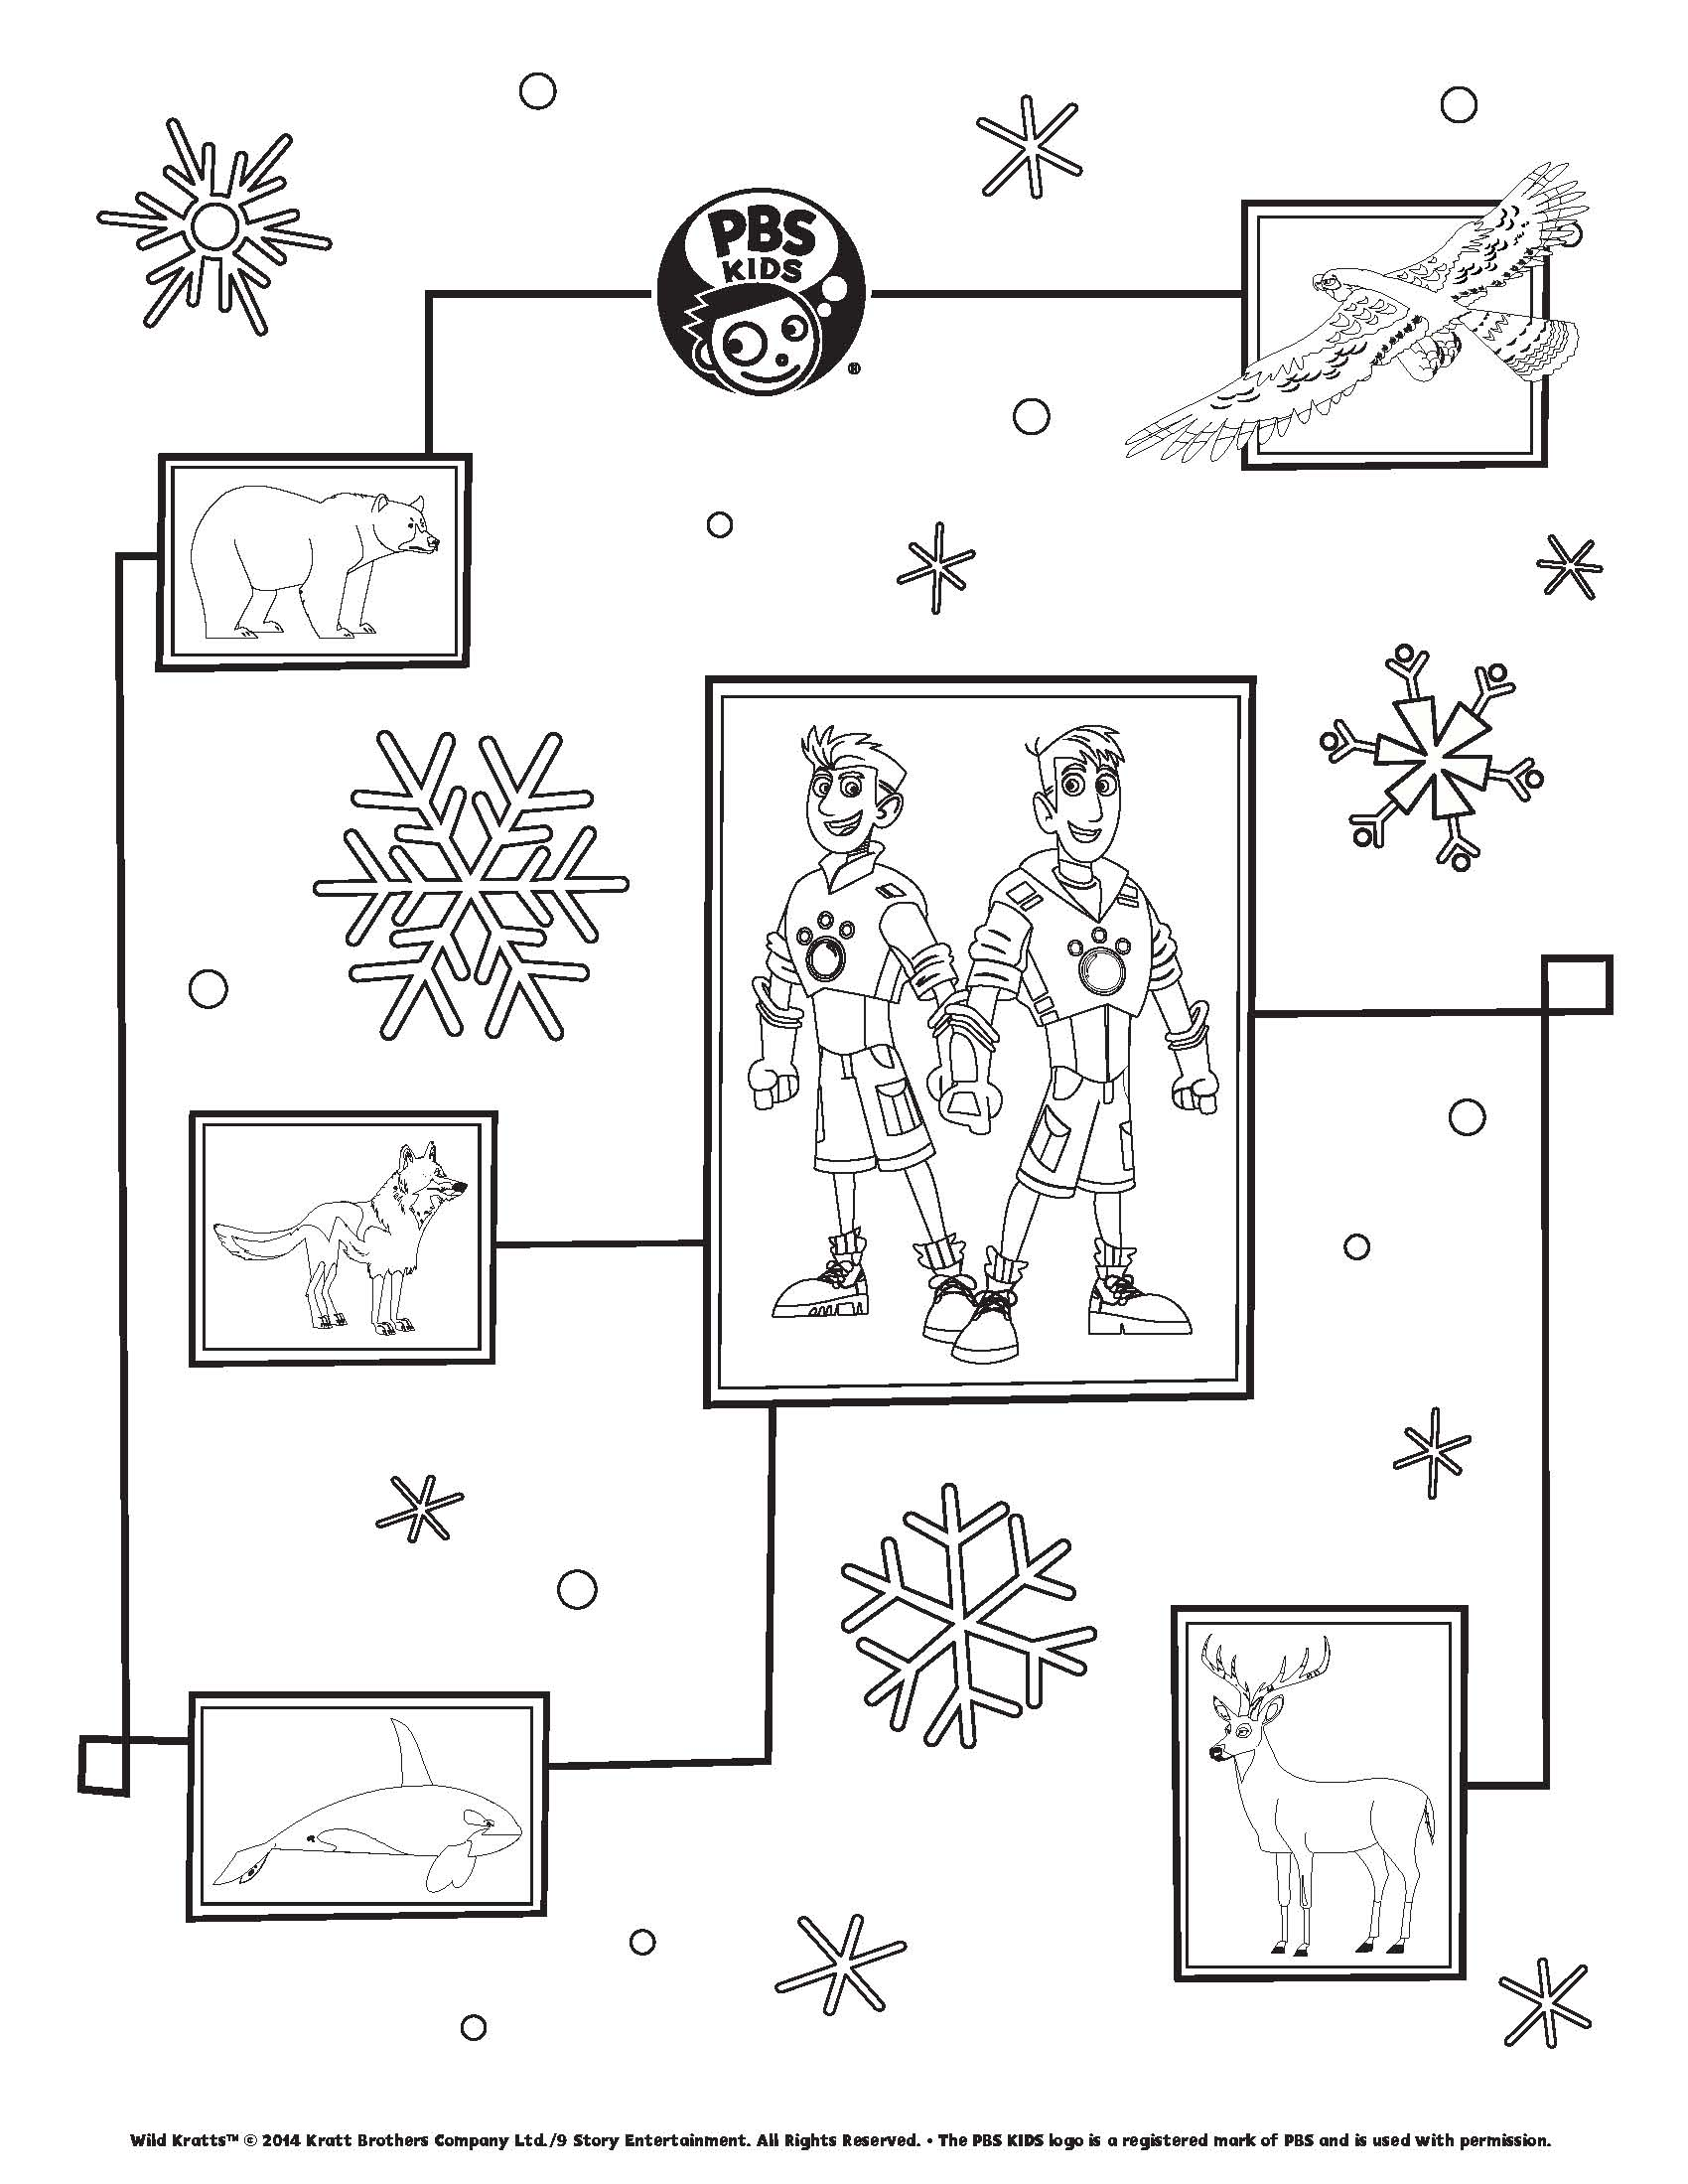 Wild kratts_wrapping paper_Page_2